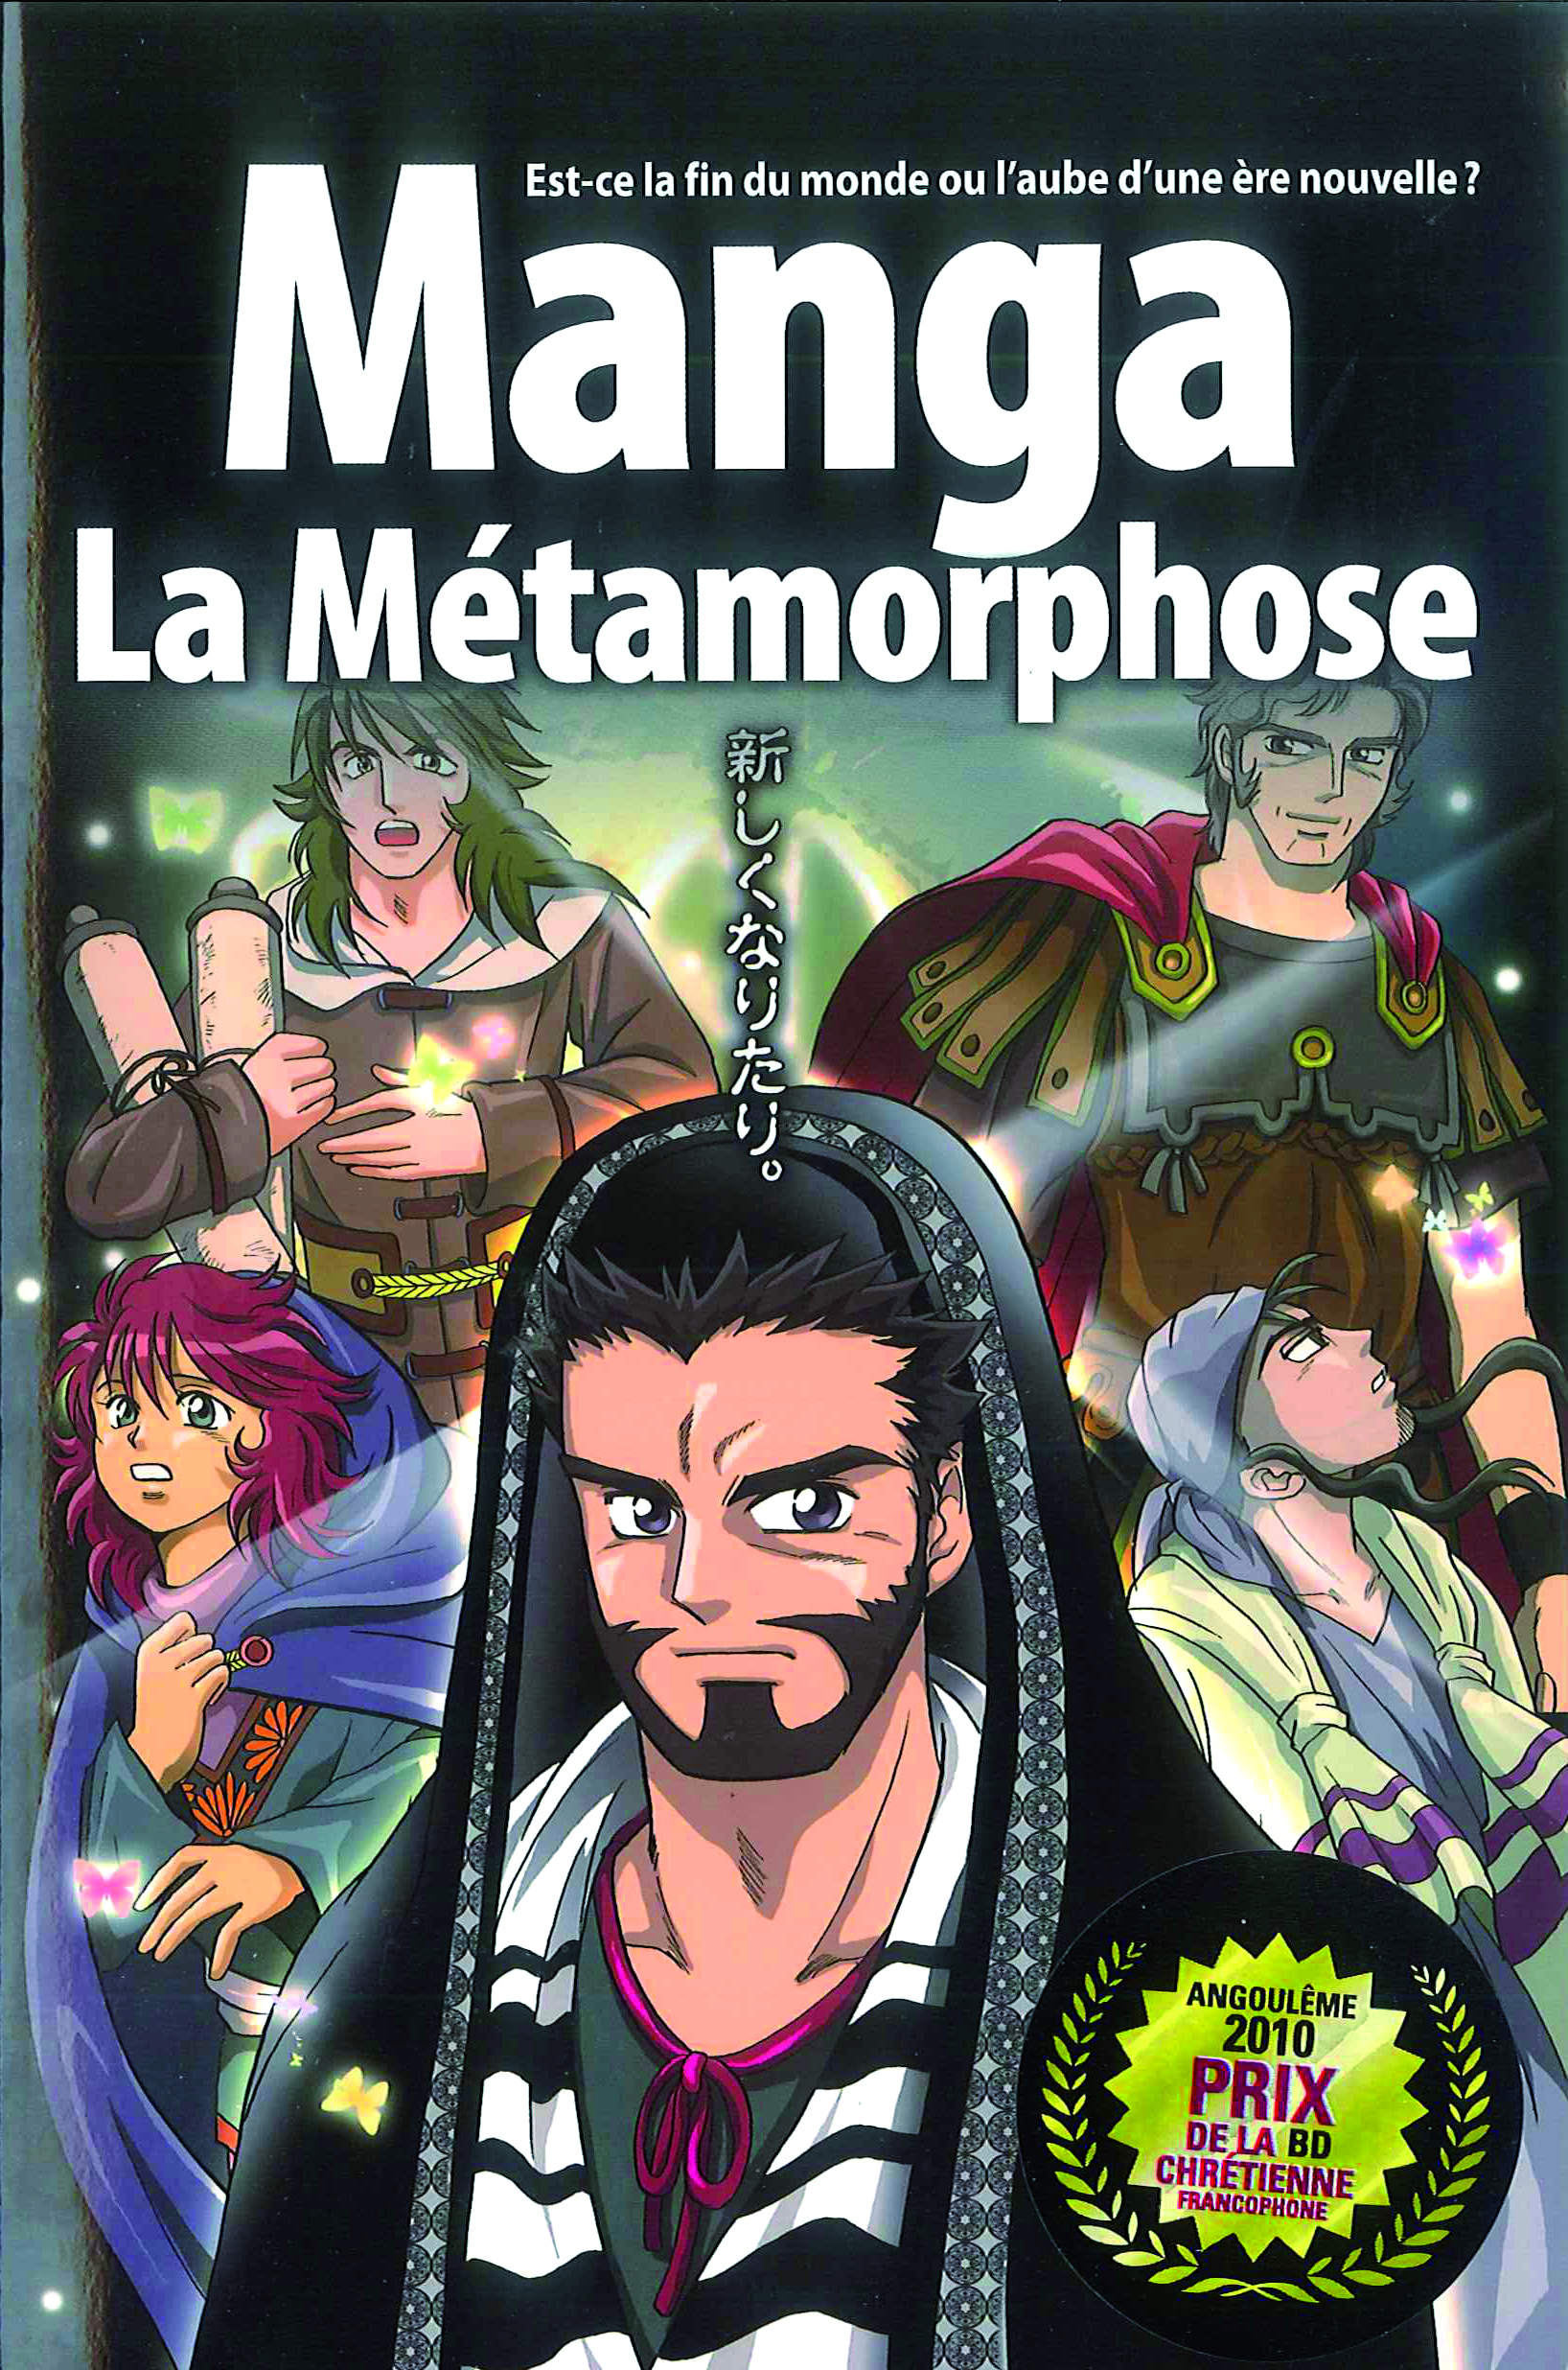 LA BIBLE MANGA, VOLUME 5 : LA METAMORPHOSE